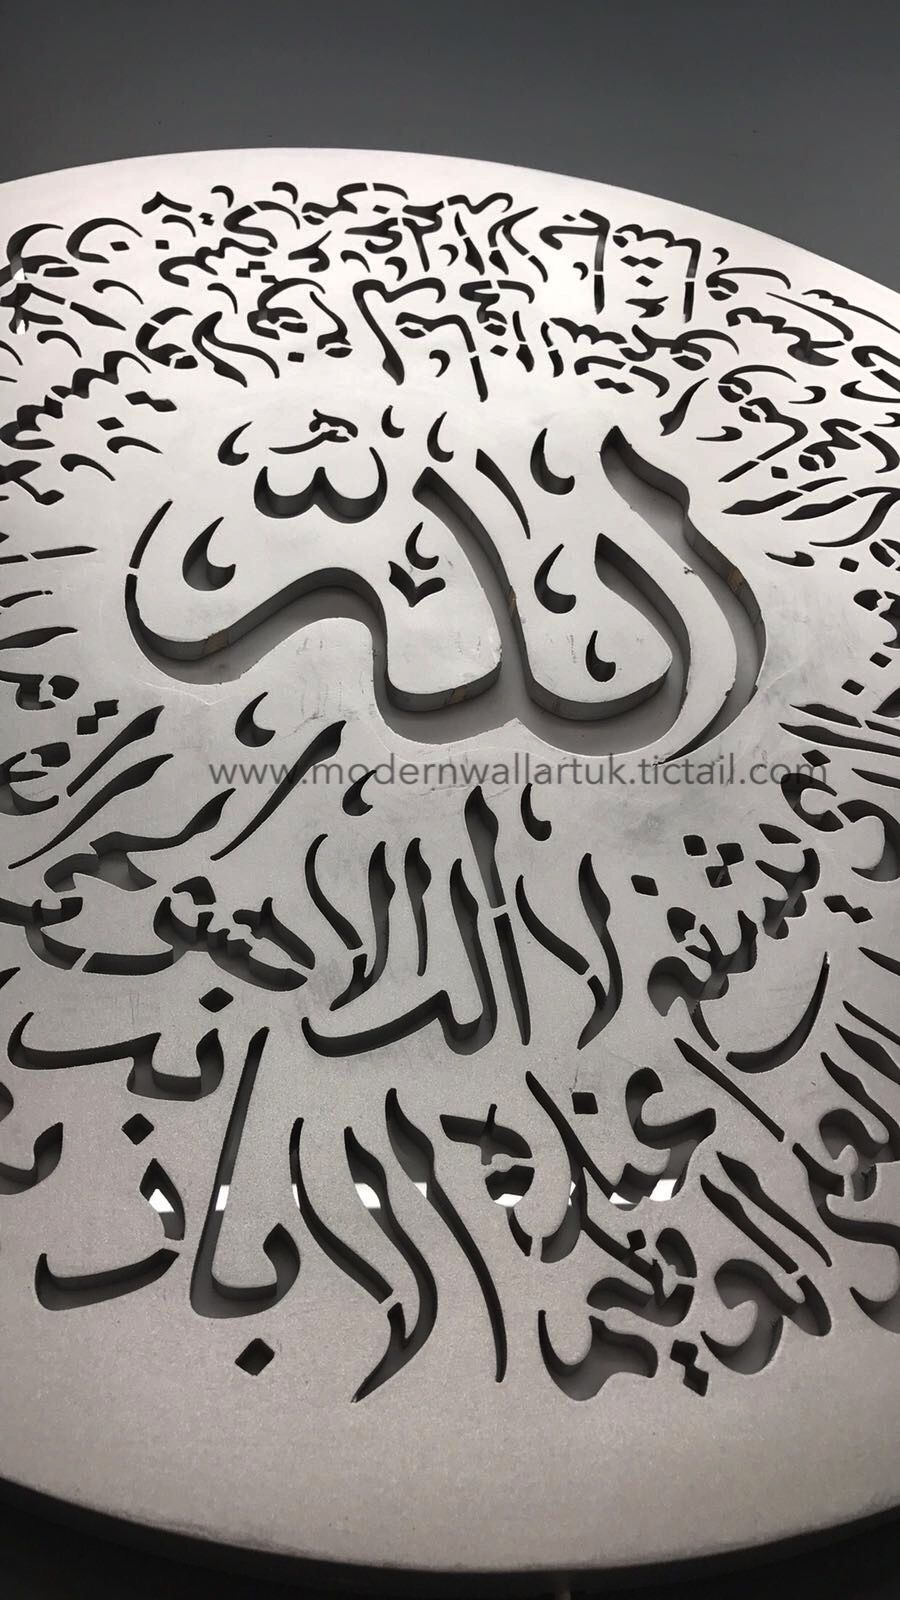 Led Ayatul Kursi Wall Art Designed In A Large Circular Wood That Beautifully Sits A Little Elevated From The Wall The Intricat Art Wall Art Uk Modern Wall Art